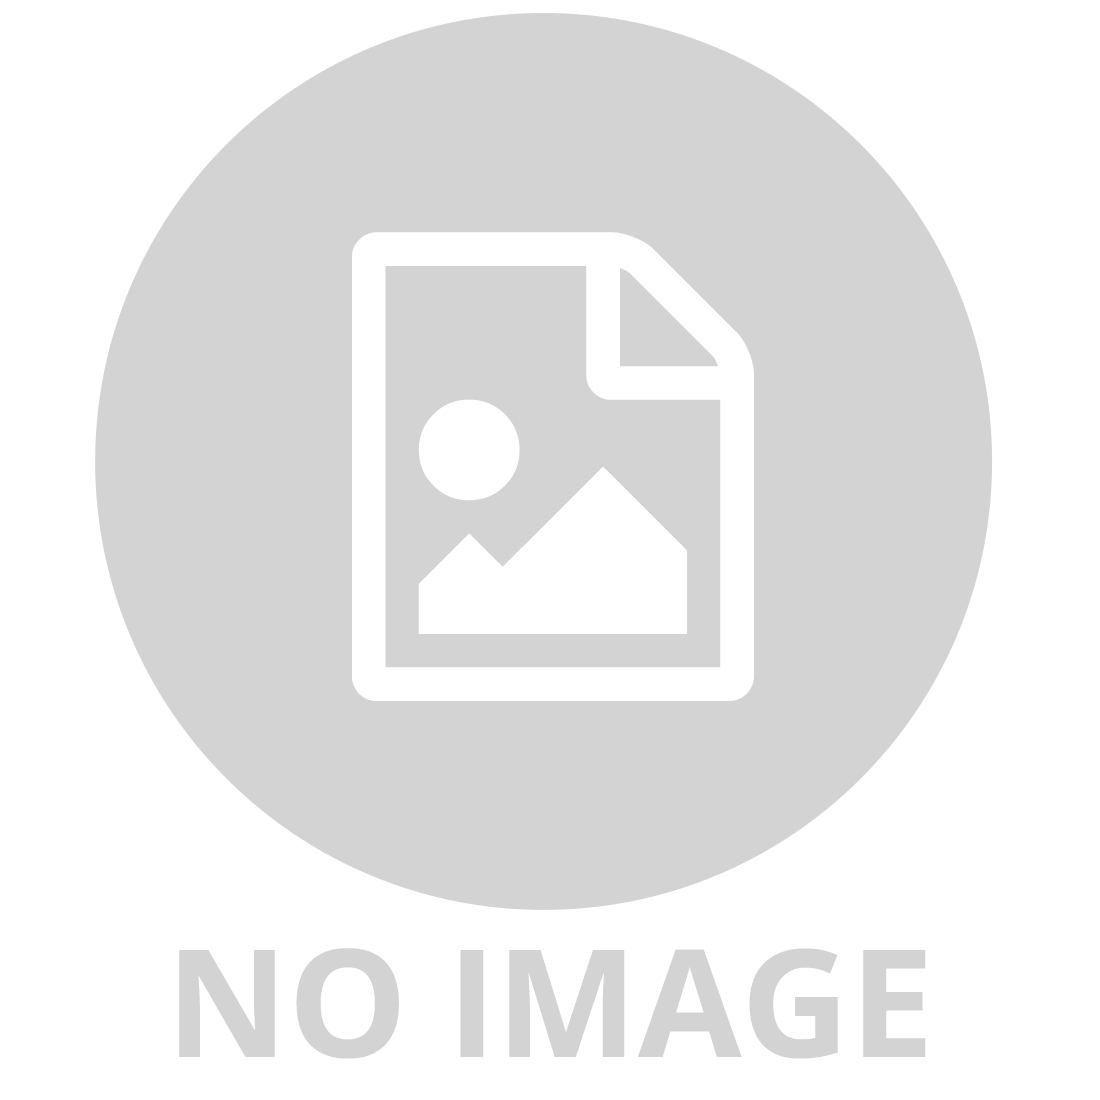 AVENGERS TITAN HERO FIGURE - IRON MAN